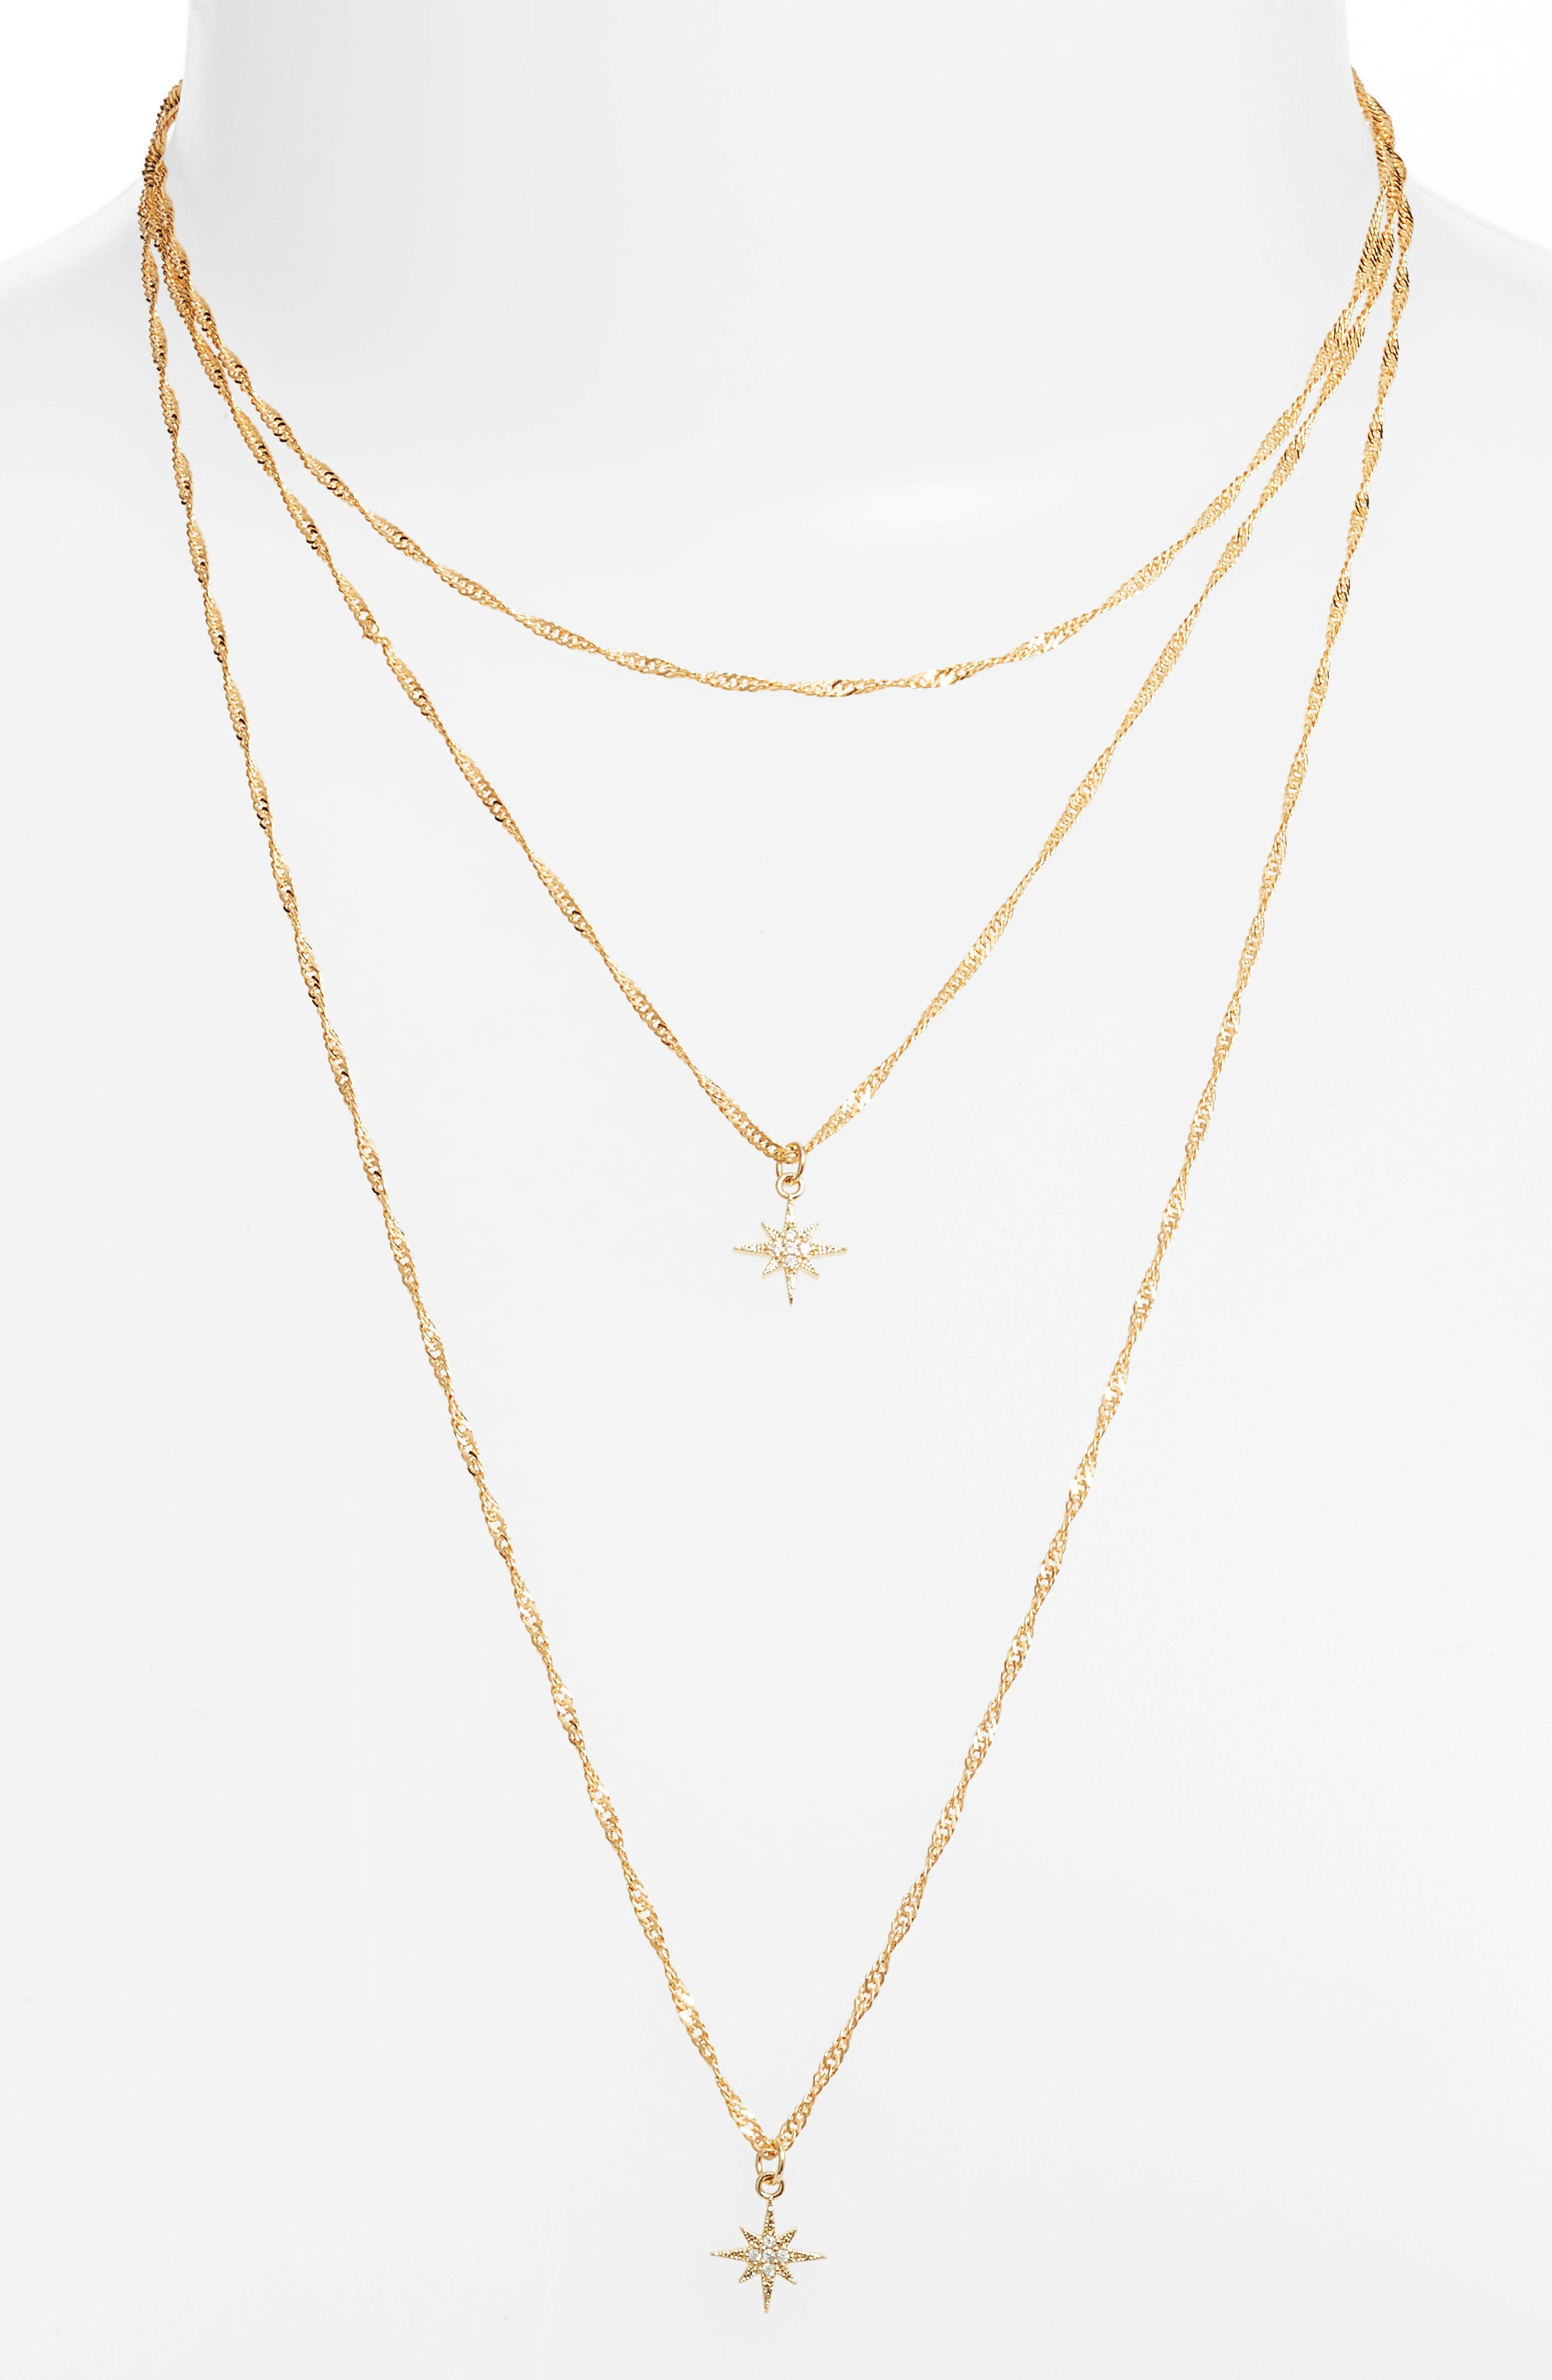 Yolanda Layered Necklace,                         Main,                         color, Gold